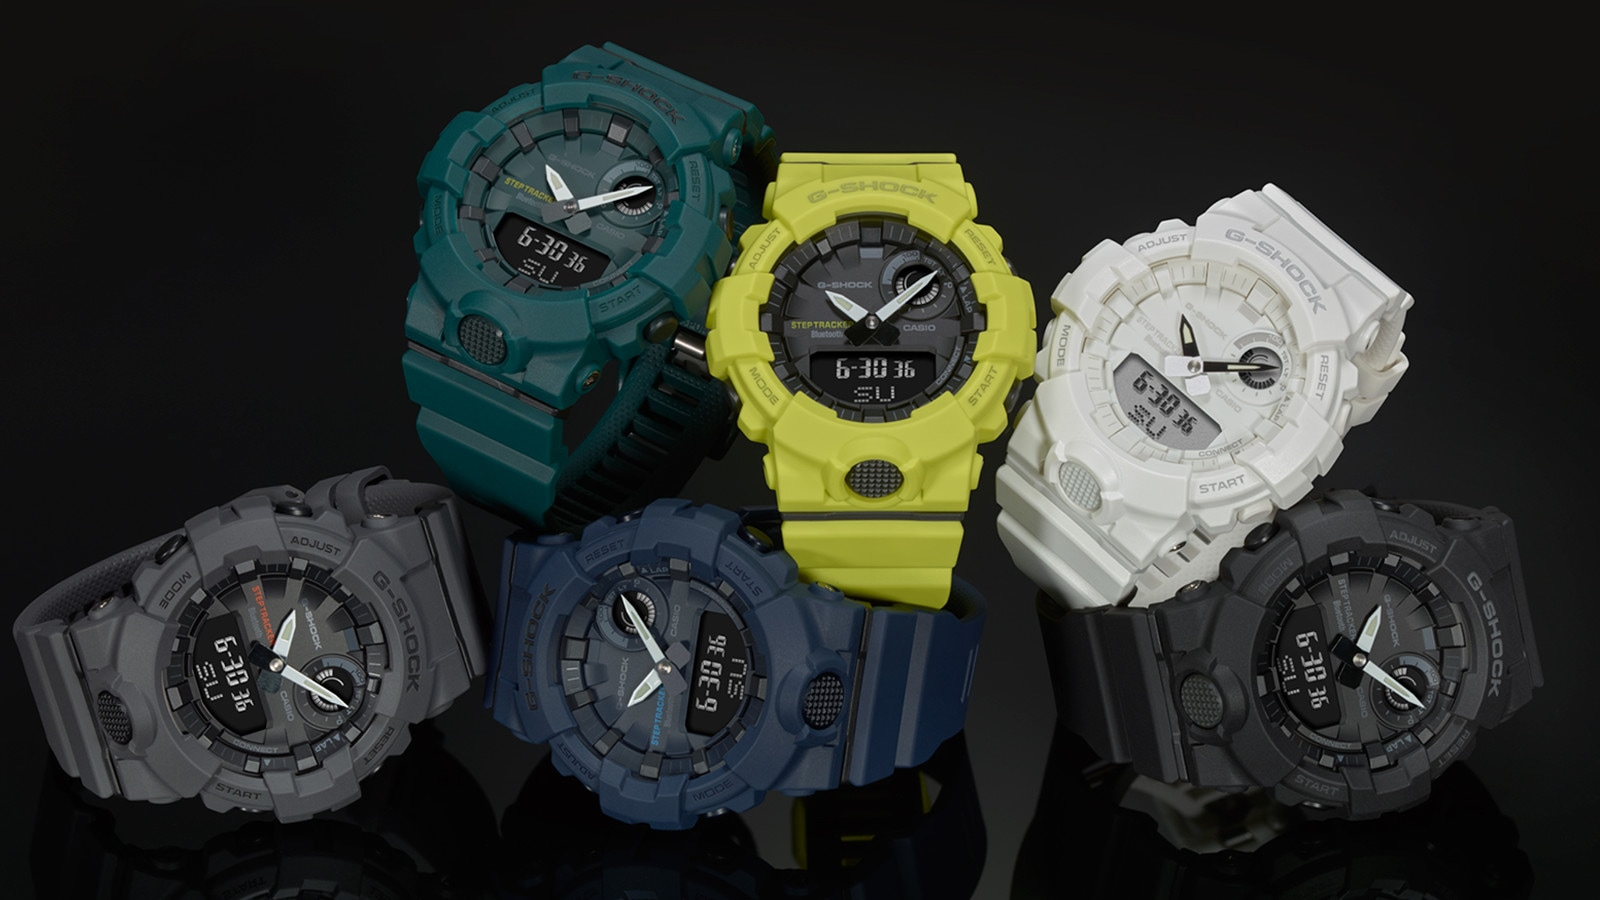 ada5a2b025b G-SQUAD - Products - G-SHOCK - CASIO